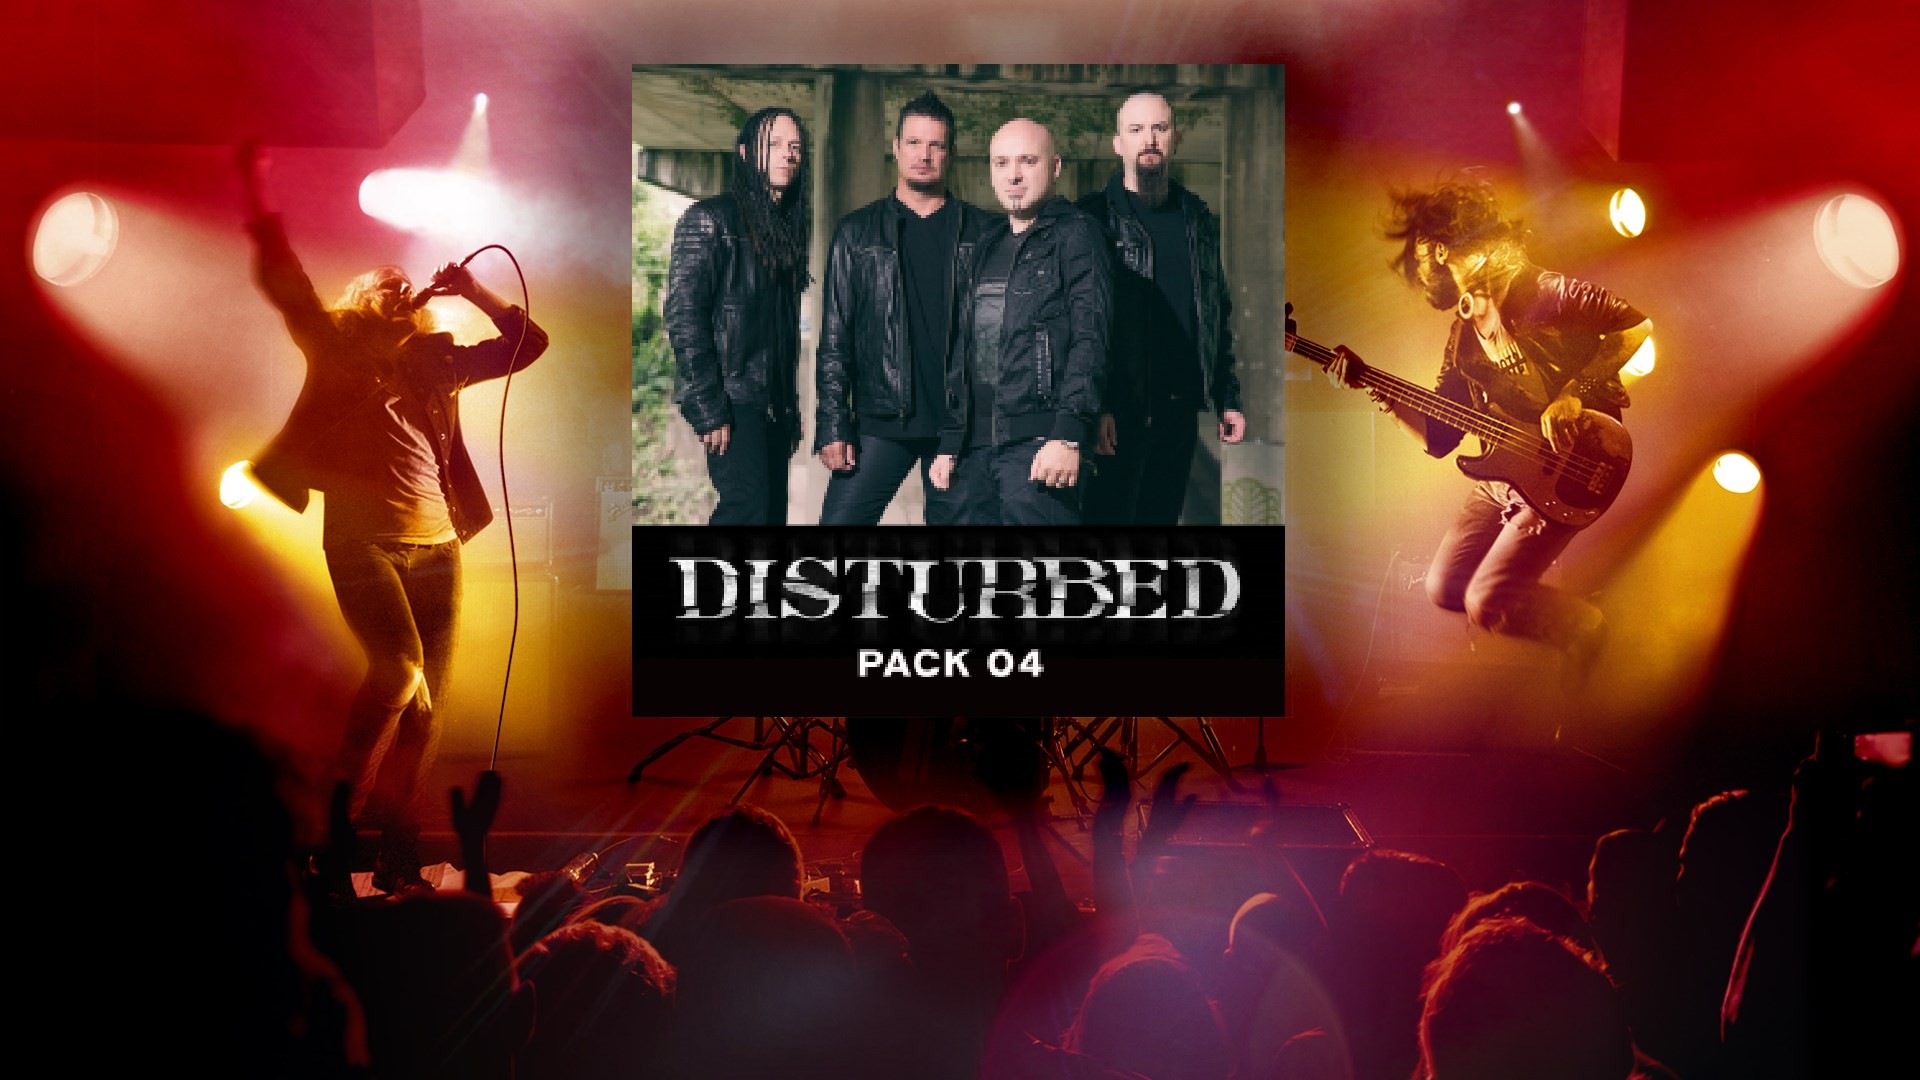 Disturbed Pack 04